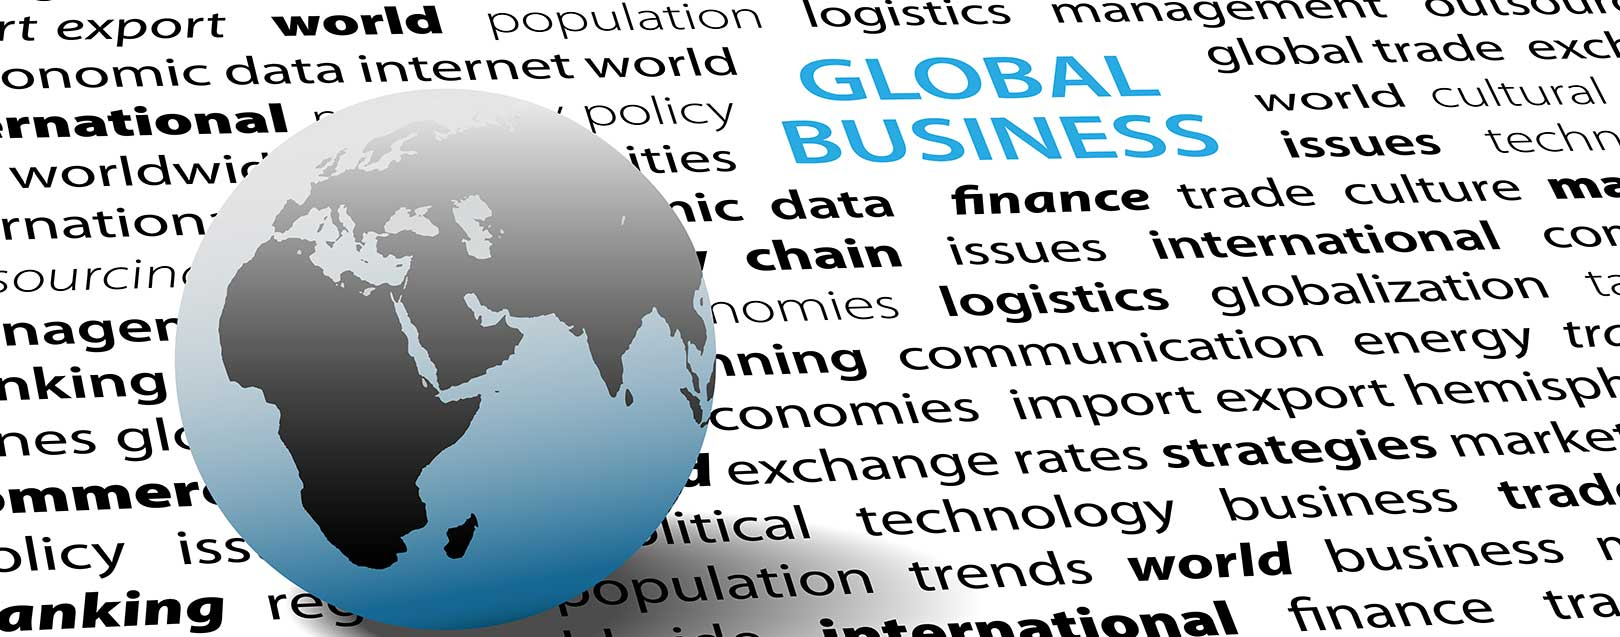 Trade policies focus on growth of exports – is it biased?